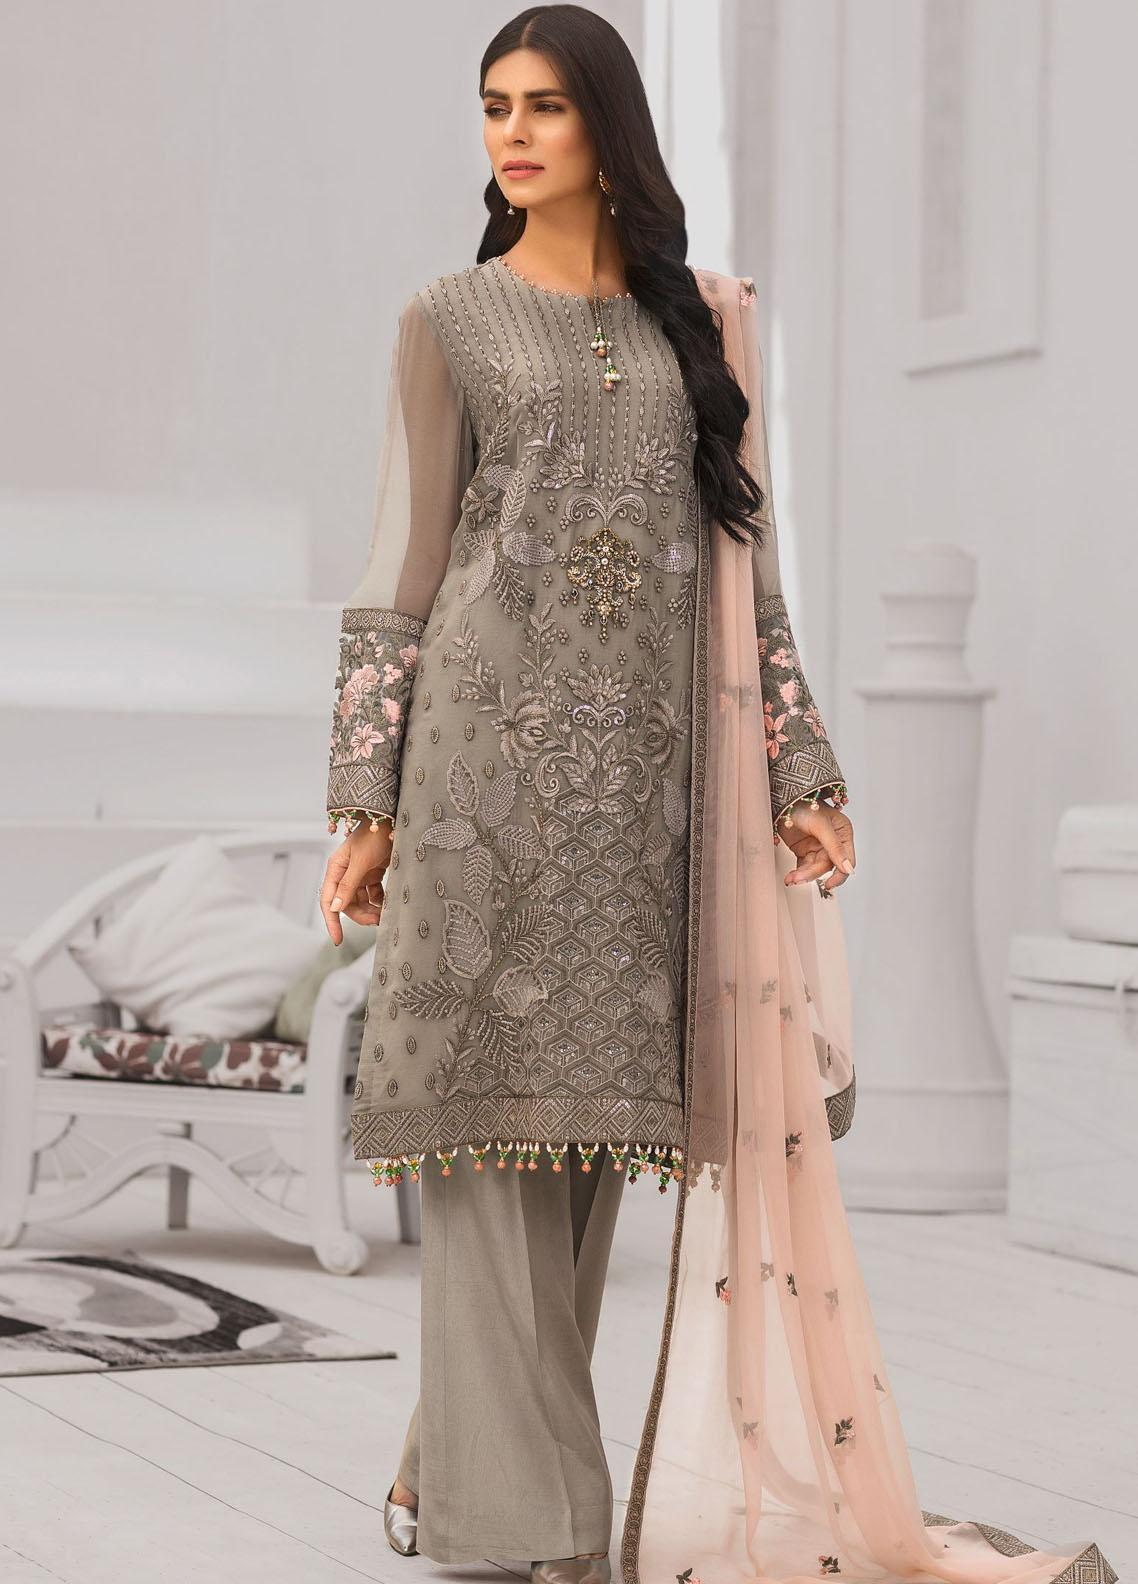 Safeera by Flossie Embroidered Chiffon Unstitched 3 Piece Suit FL20-SF6 09 Sublime Beige - Luxury Collection